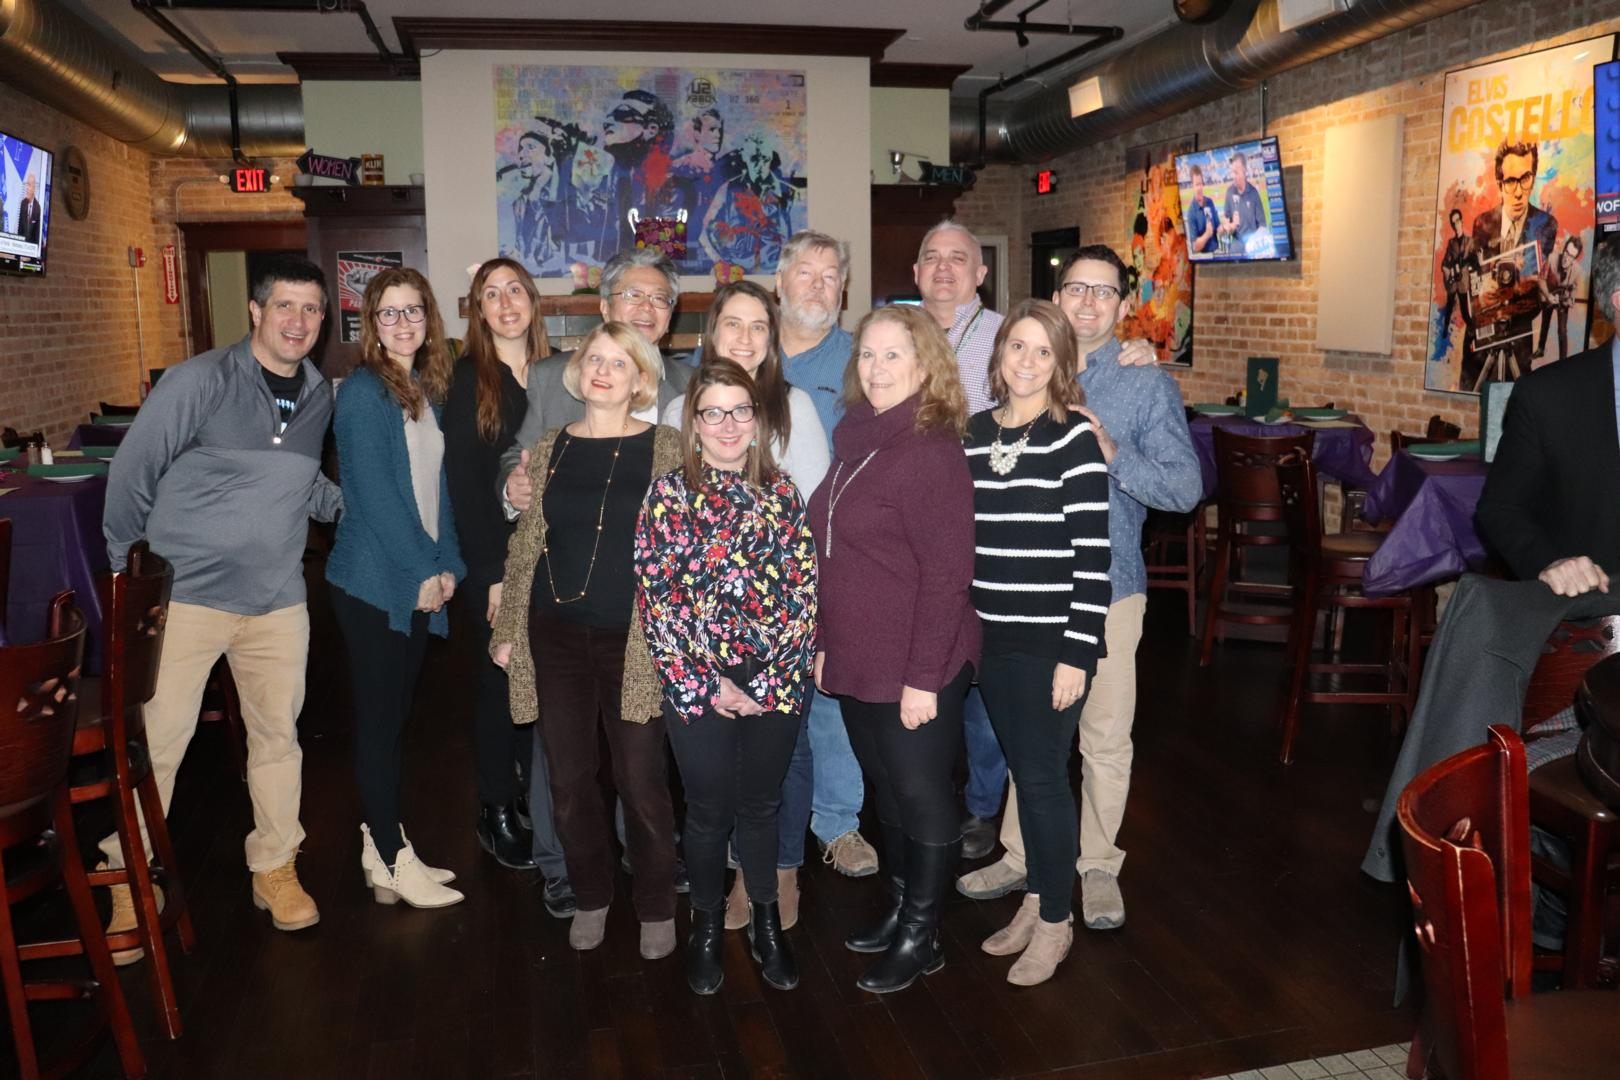 Avenues celebrates Fat Tuesday at Harp and Fiddle in Park Ridge